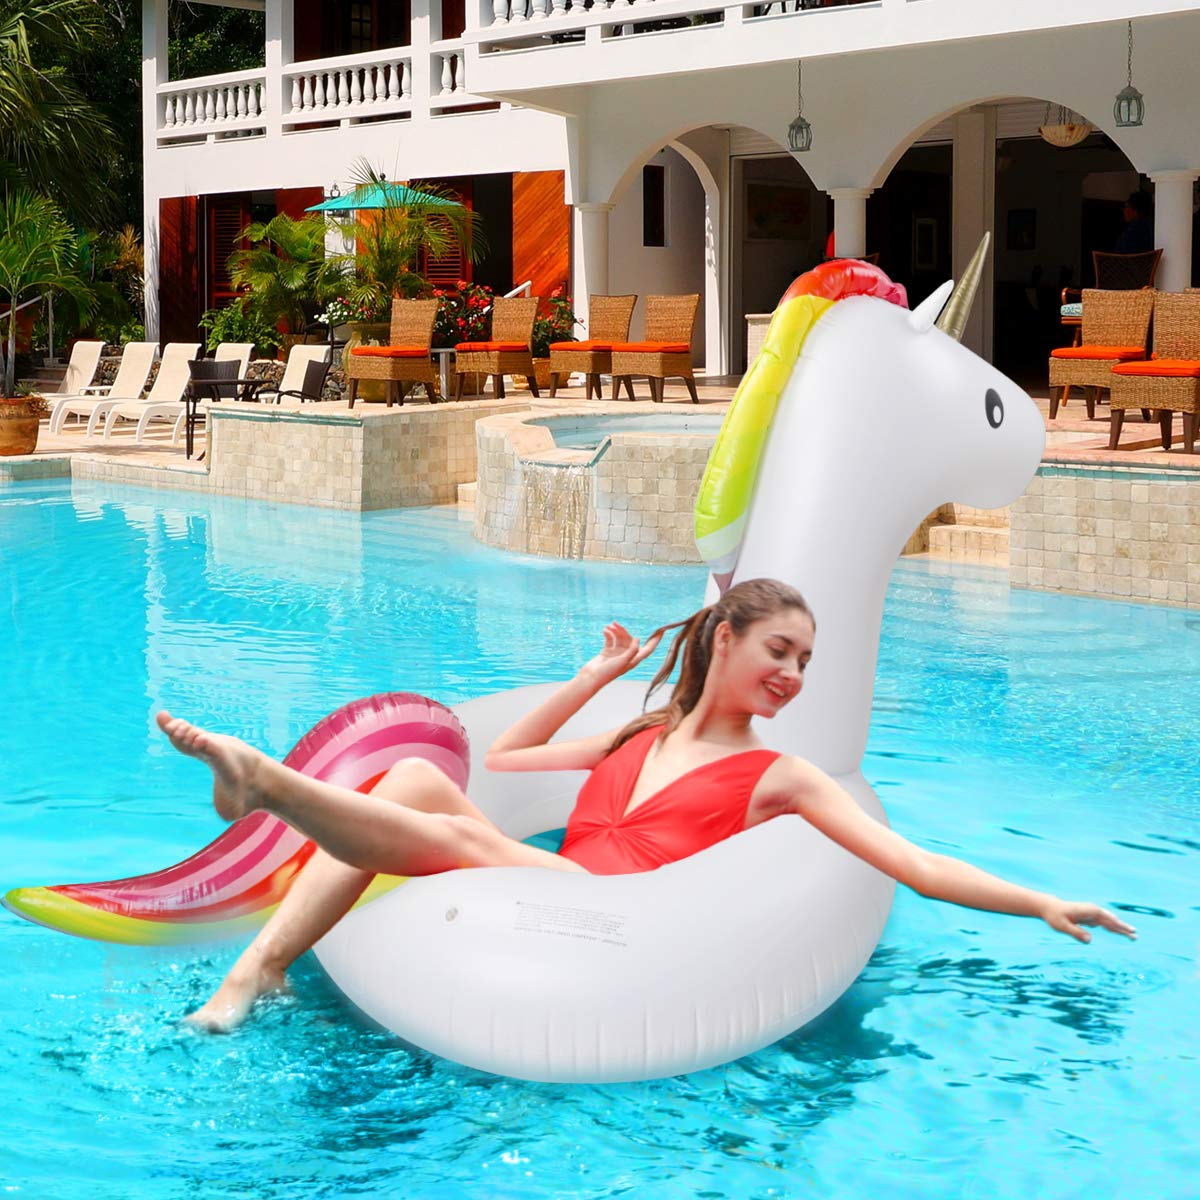 Keenstone Pool Floats Inflatable Unicorn Tube, Pool Float, Fun Beach Floaties, Swim Party Toys, Summer Pool Outdoor Pool Toys Float Raft Lounge for Adults & Kids